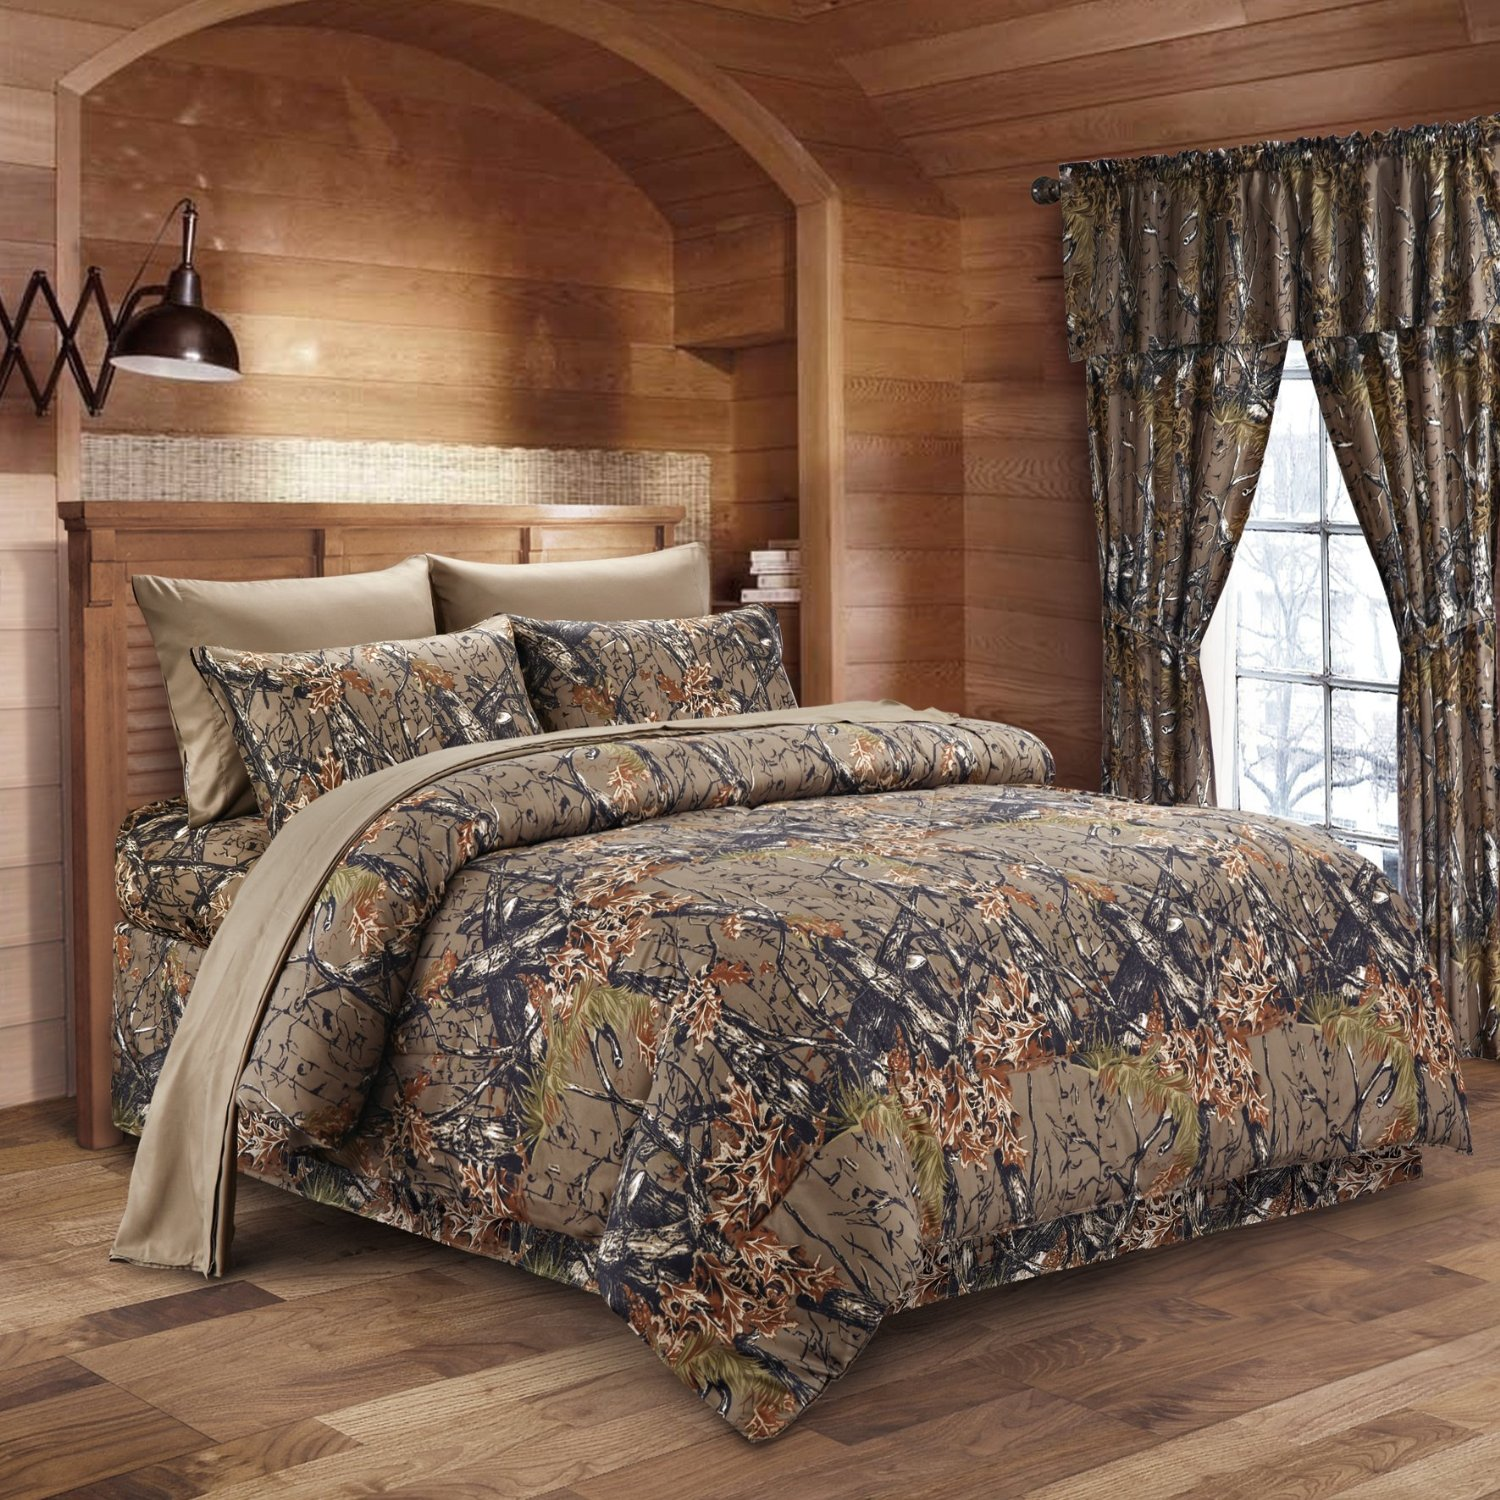 The Woods Natural Green Camouflage Queen 8pc Premium Luxury Comforter, Sheet, Pillowcases, and Bed Skirt Set by Regal Comfort Camo Bedding Set For Hunters Cabin or Rustic Lodge Teens Boys and Girls